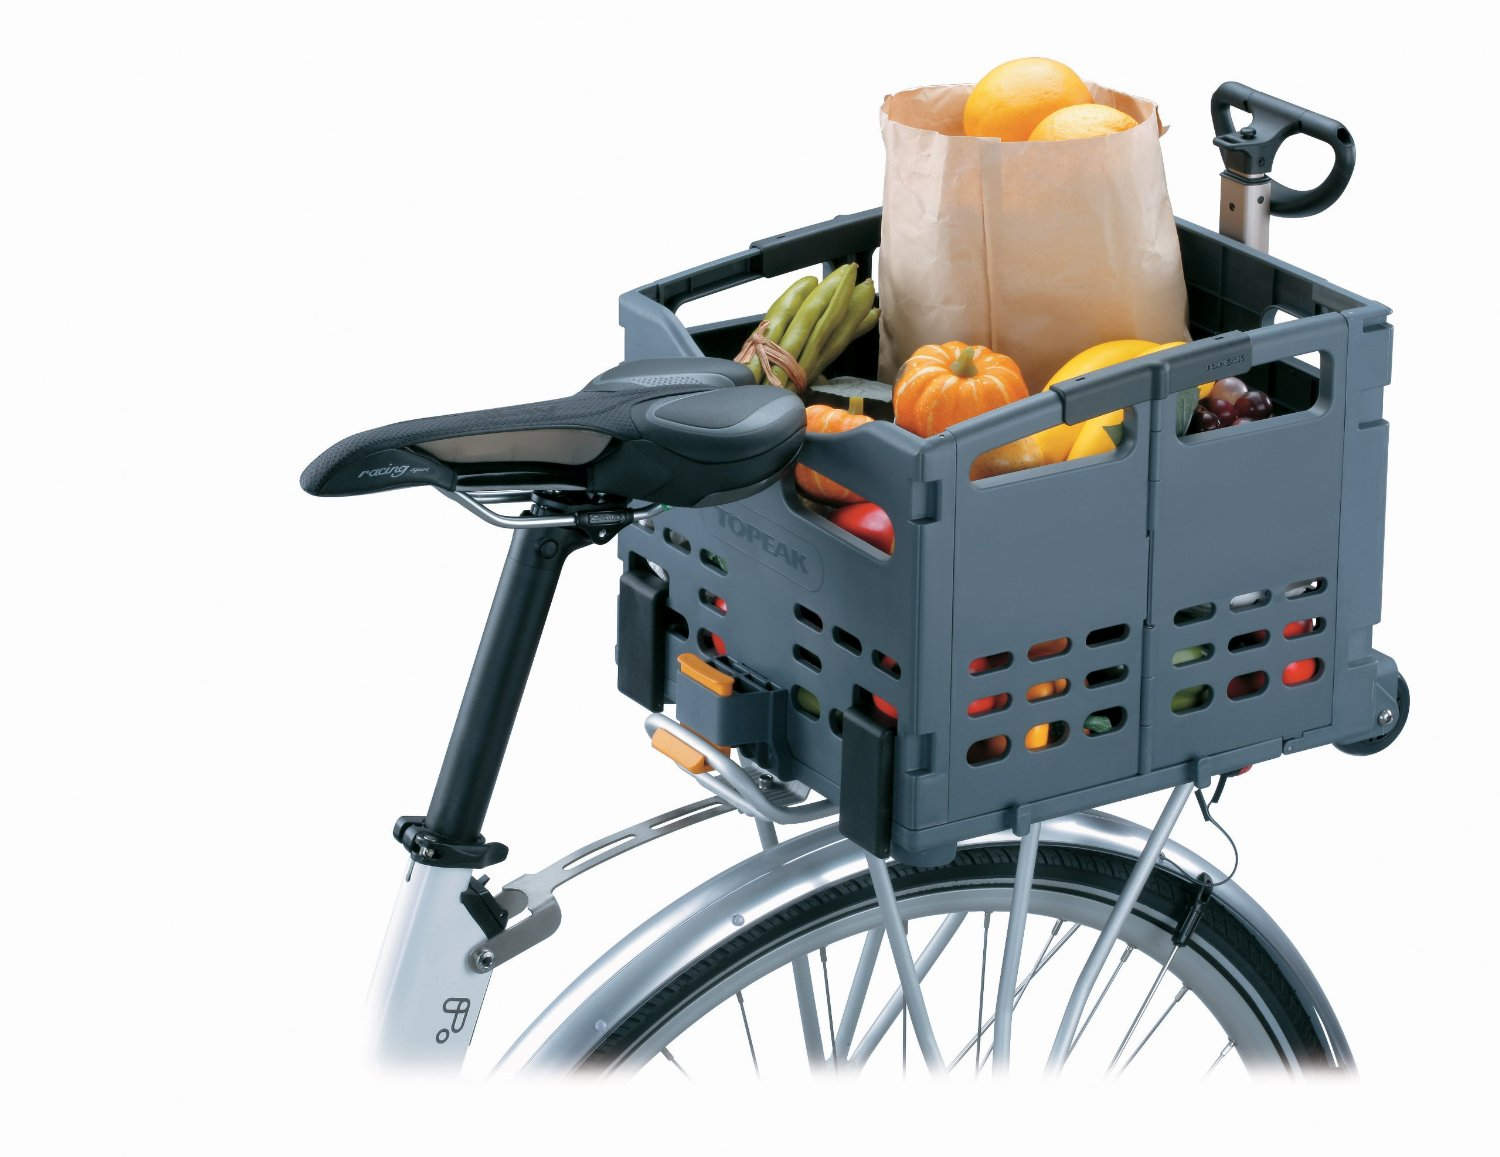 Topeak Trolley Folding Basket